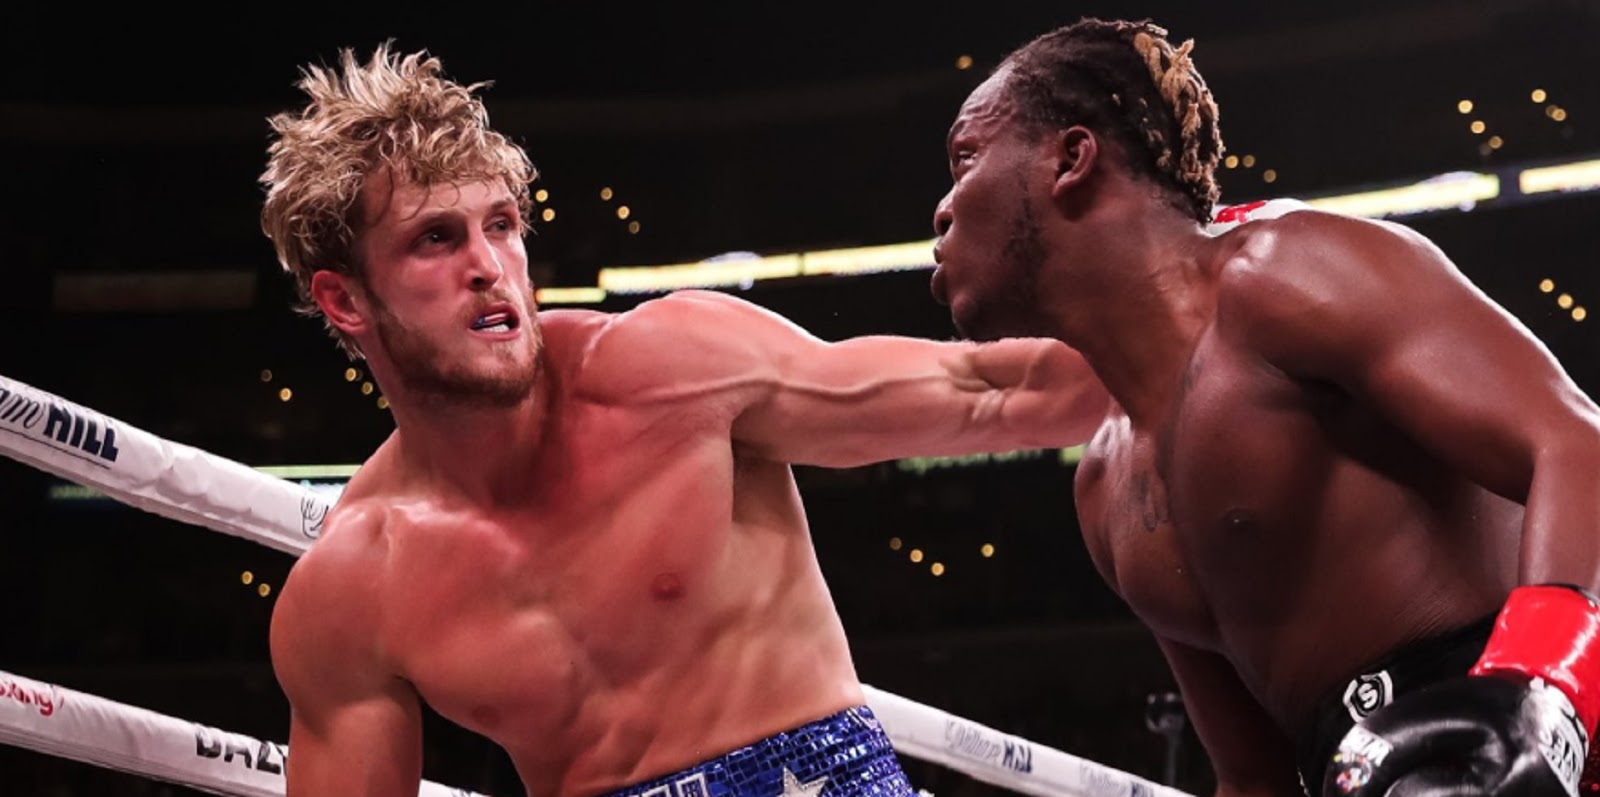 KSI VS. LOGAN PAUL